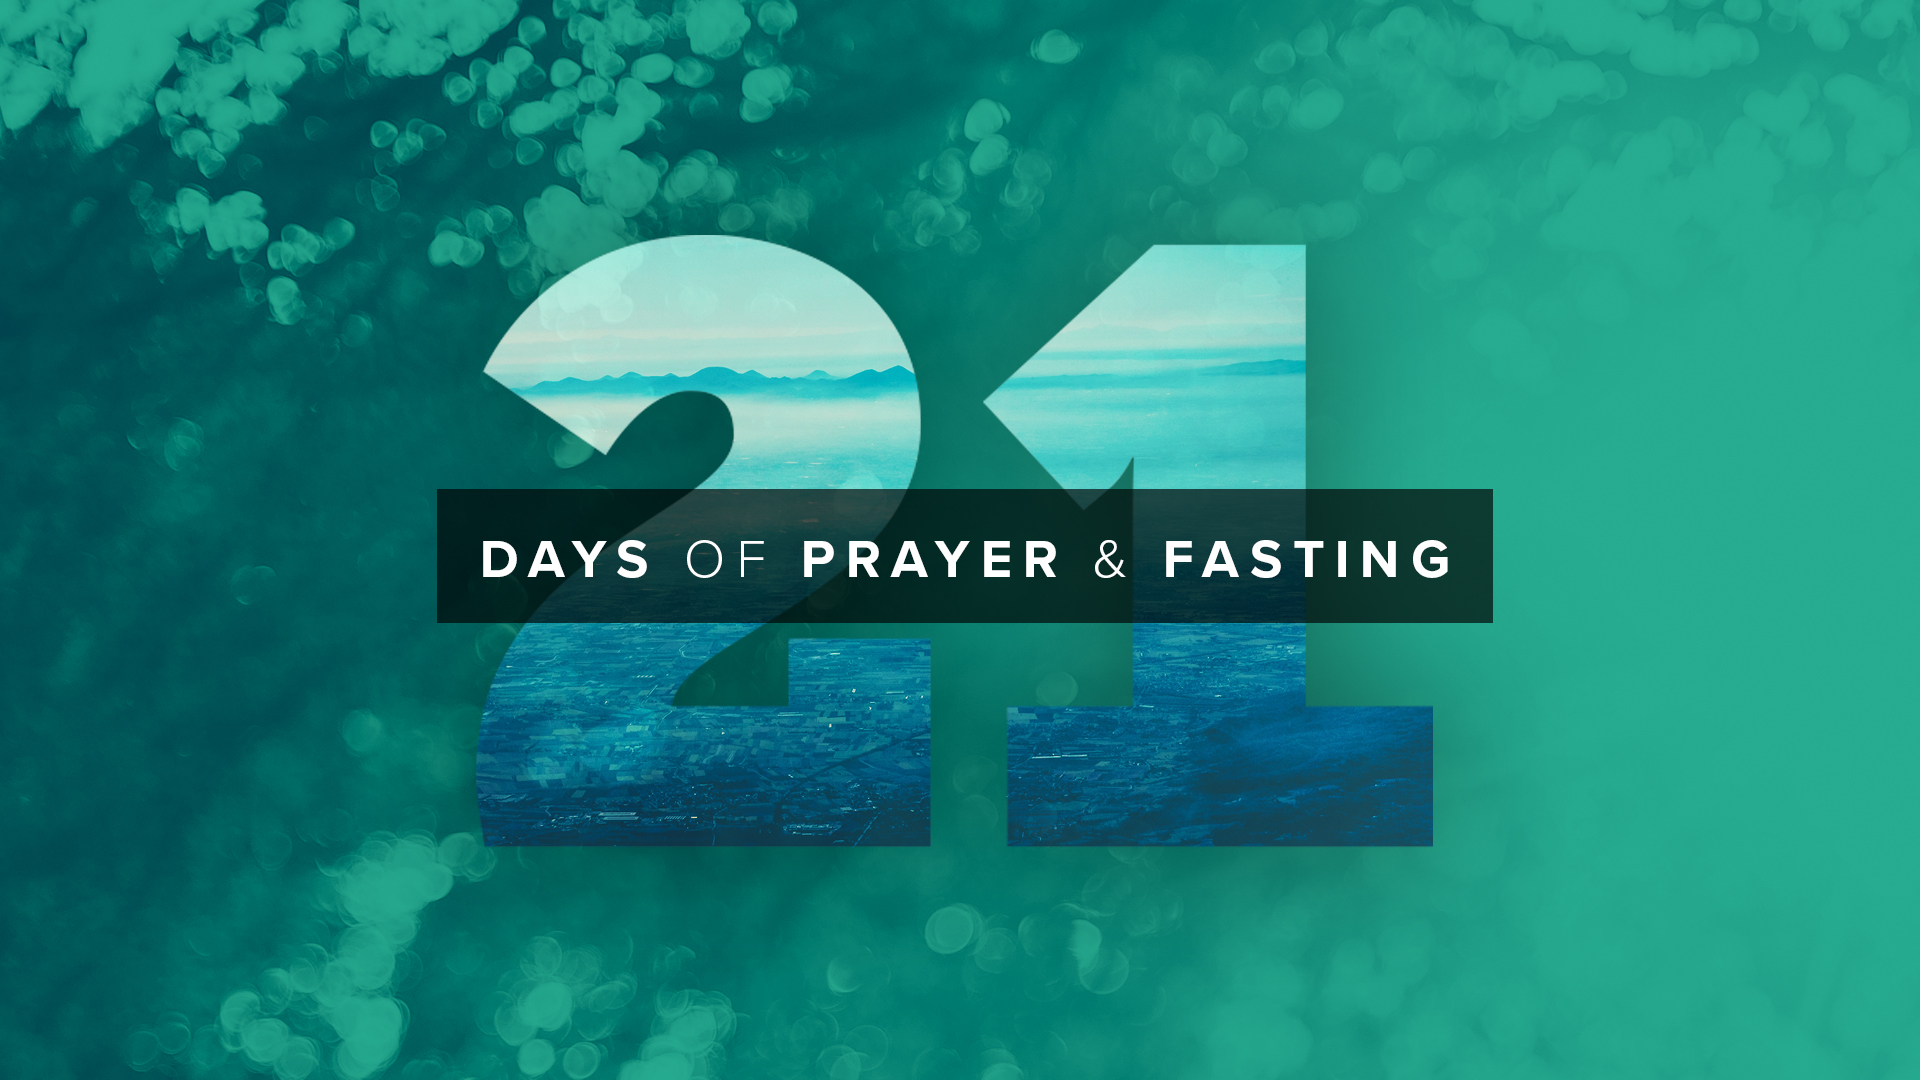 Renovation Church — 21 Days Of Fasting & Prayer